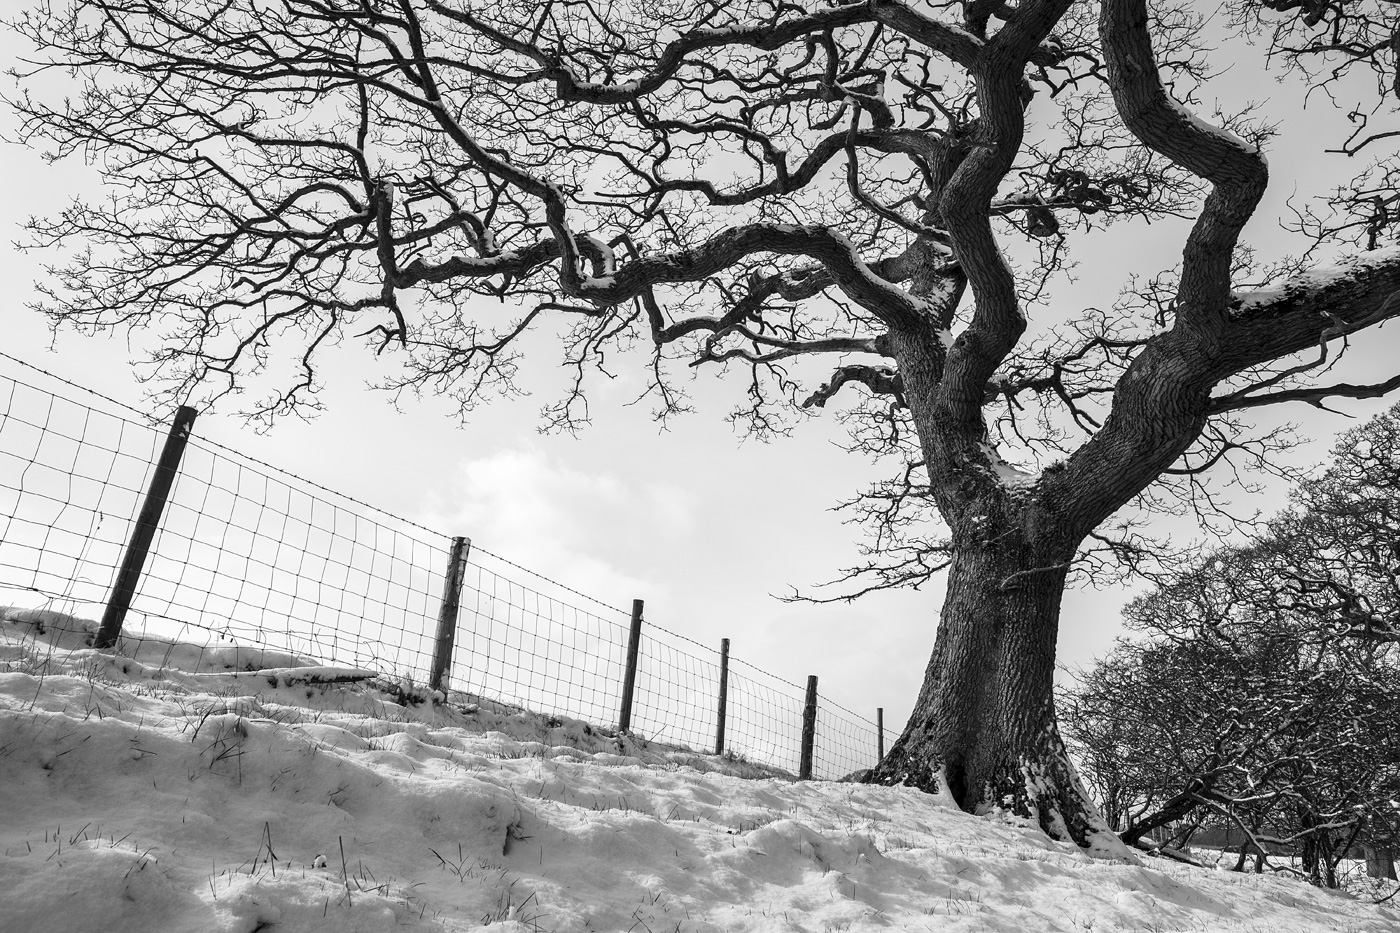 Snow scene with Oak tree reaching over fence line, Poynings West Sussex UK black and white rural landscape photograph © P. Maton 2018 eyeteeth.net